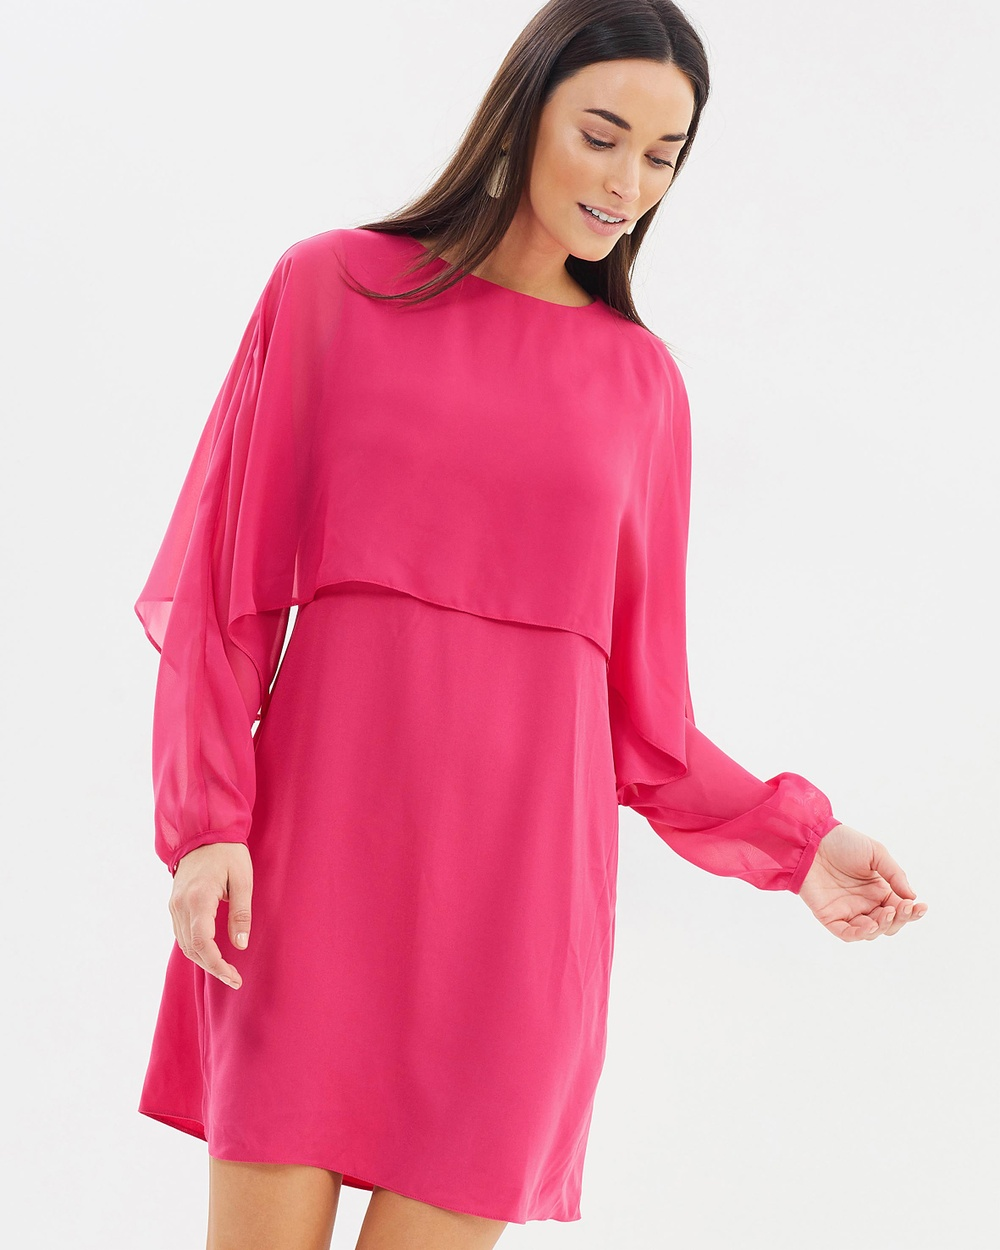 Dorothy Perkins Chiffon Overlay Dress Dresses Pink Chiffon Overlay Dress